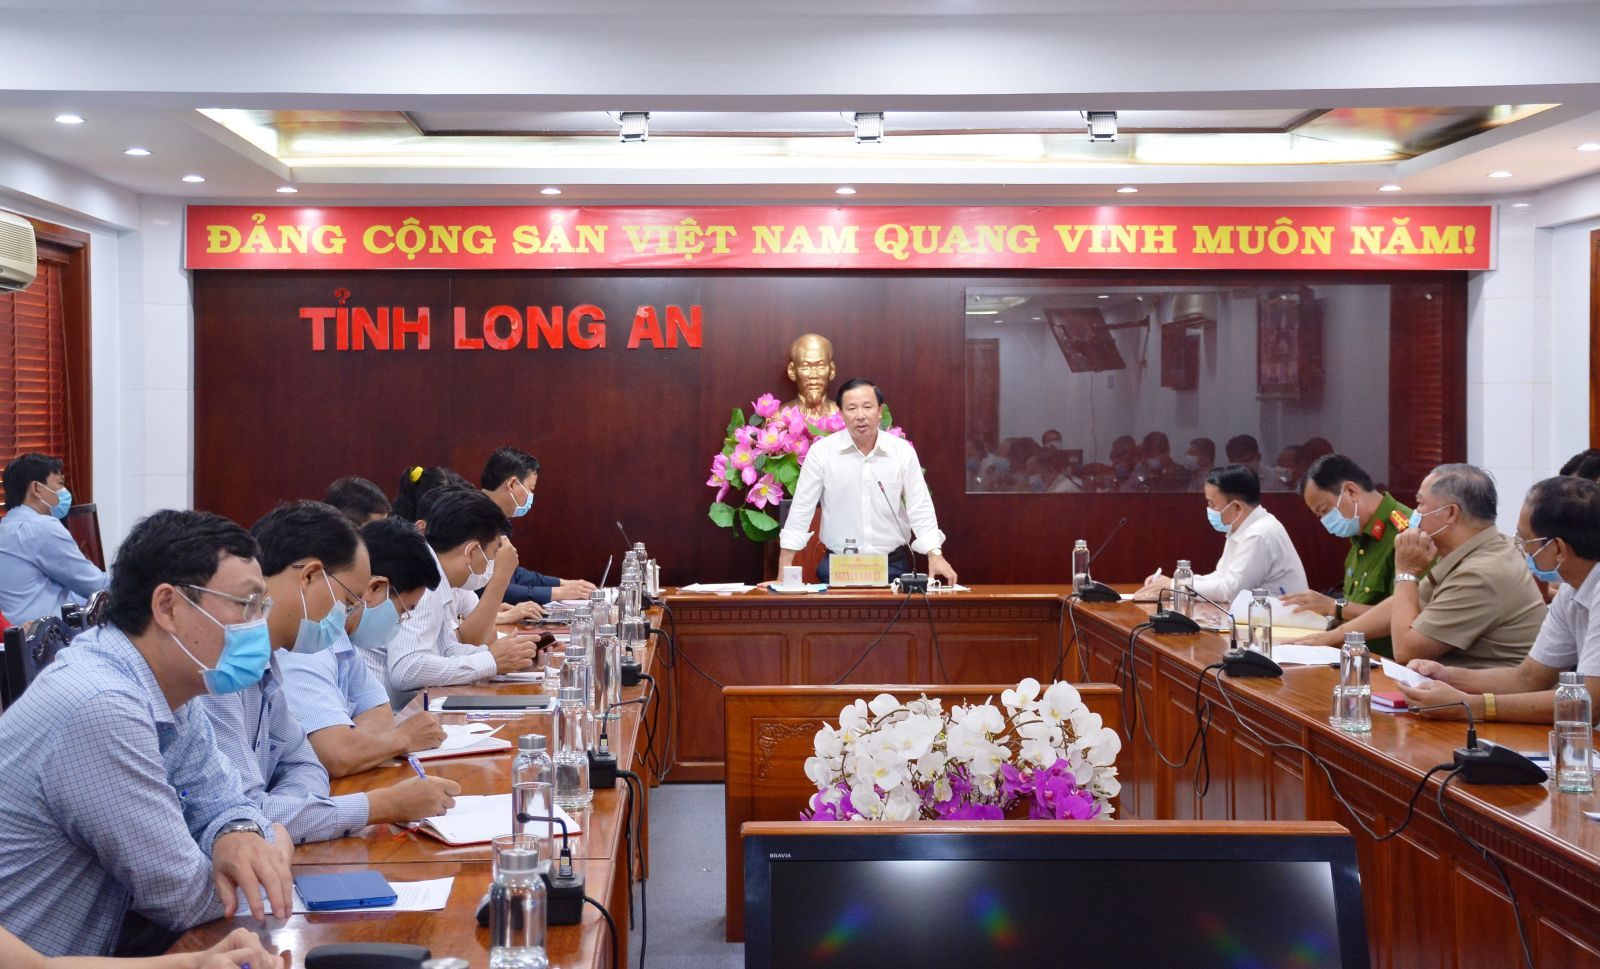 Chairman of the Provincial People's Committee, Head of the Long An Steering Committee for the Prevention and Control of Dangerous Diseases on human - Nguyen Van Ut requests that branches and localities do not neglect, are not subjective, focus on strictly implementing the work of preventing and controlling Covid-19 epidemic during the Lunar New Year